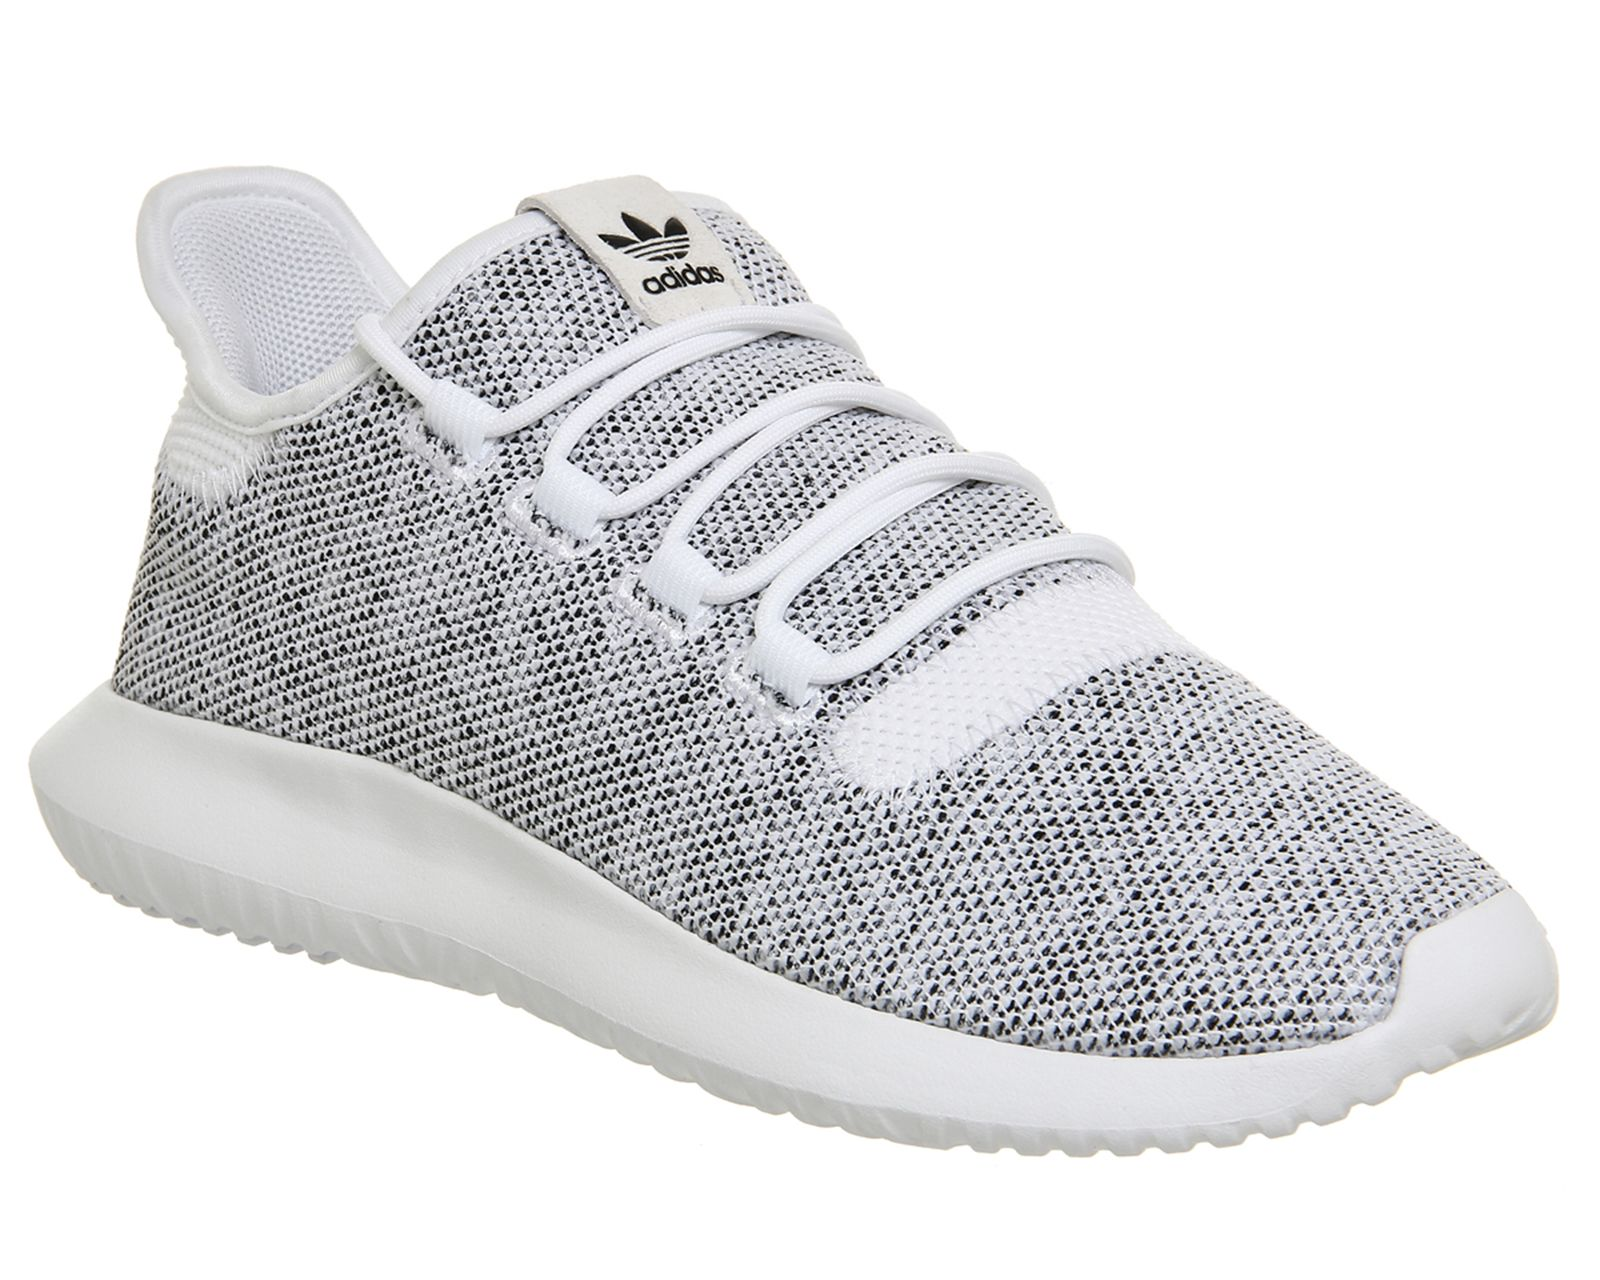 Tubular Shadow Adidas Tubular Shadow Black Knit Adidas